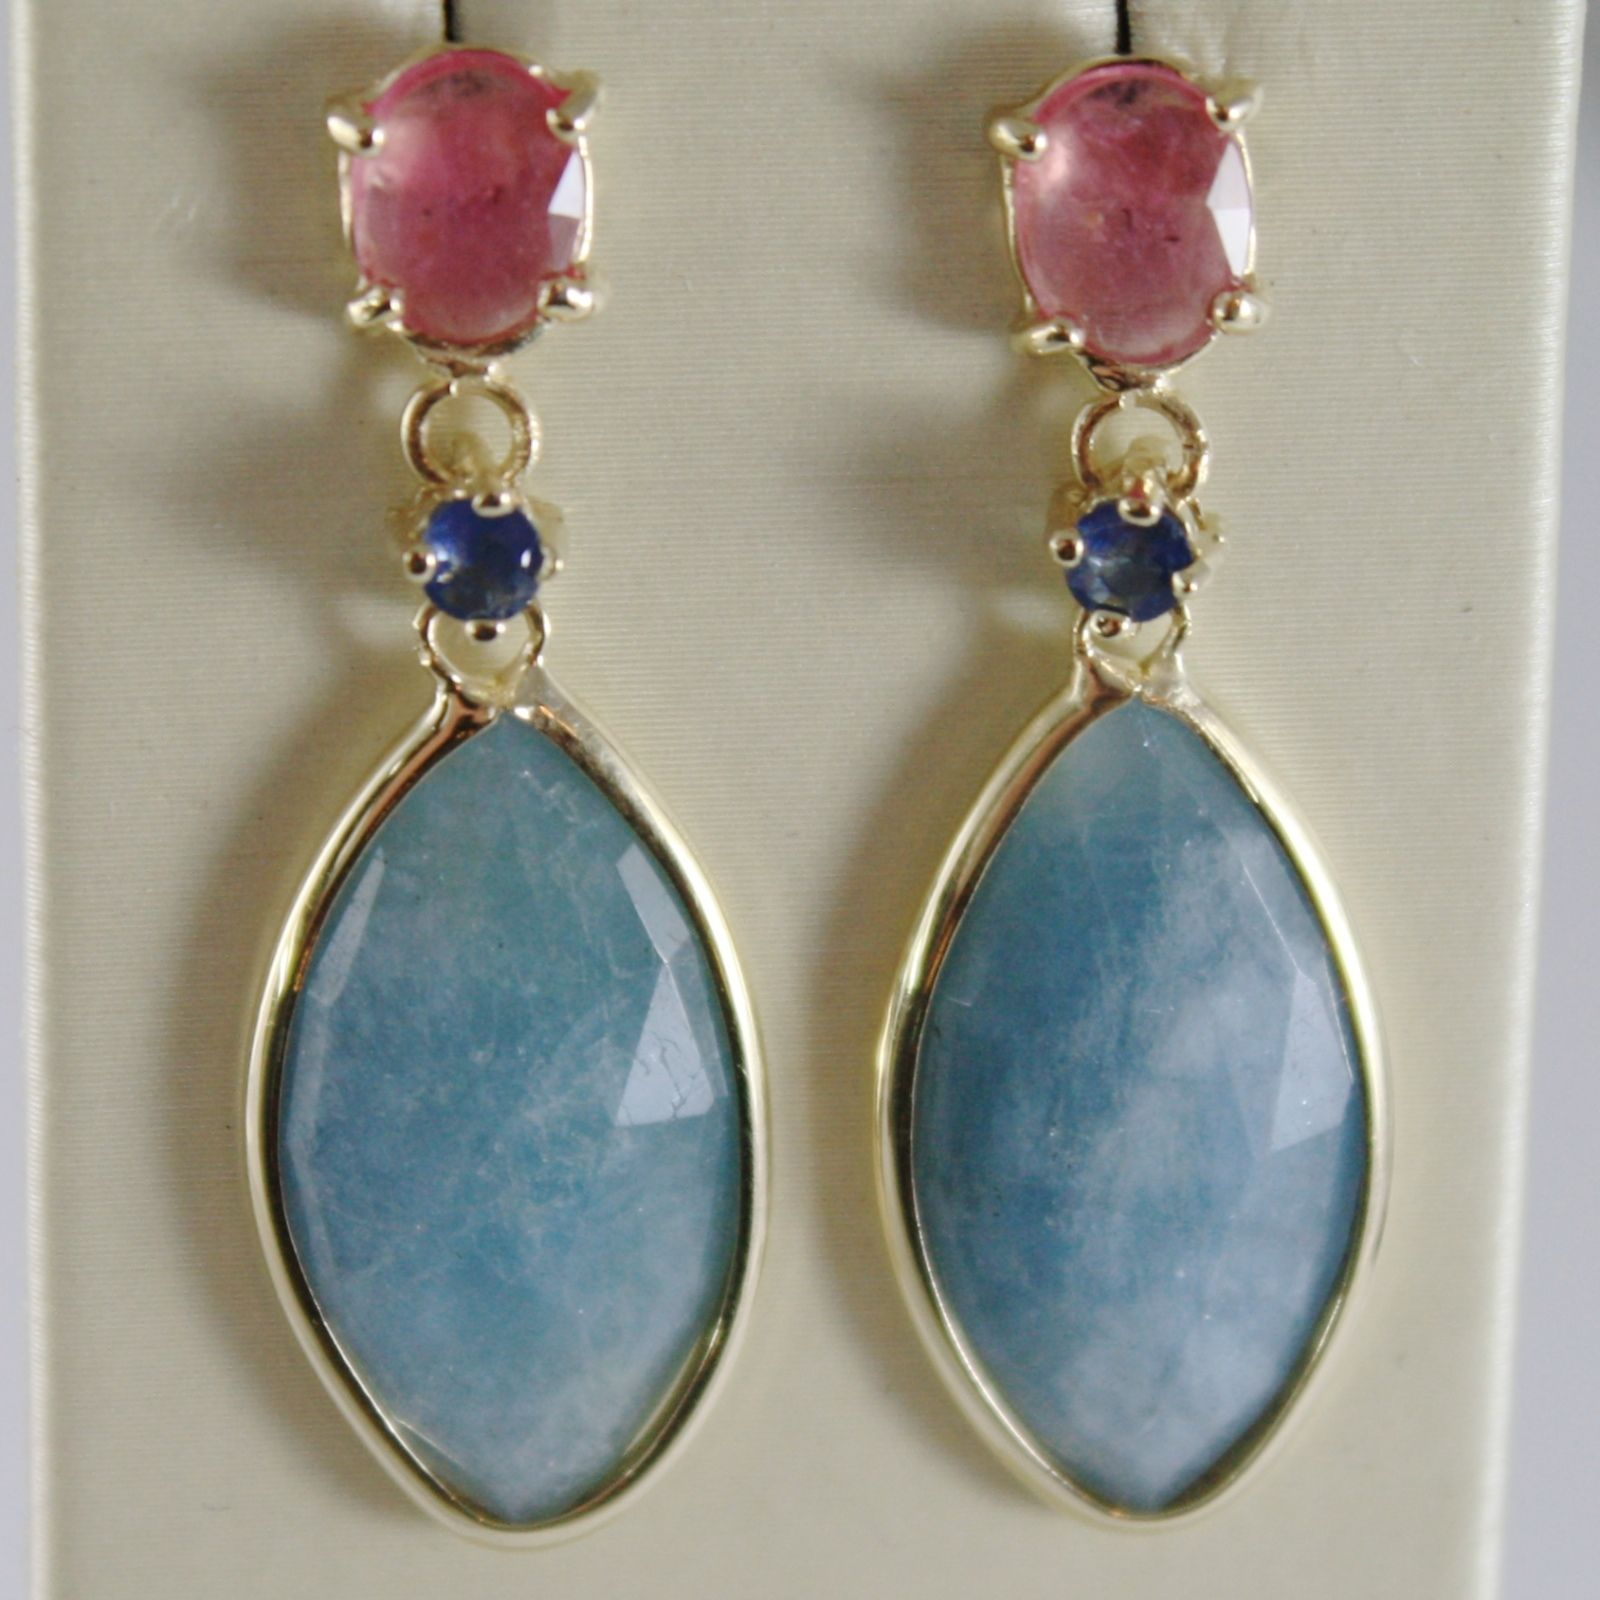 9K YELLOW GOLD PENDANT EARRINGS WITH AQUAMARINE, RUBY E SAPPHIRE MADE IN ITALY